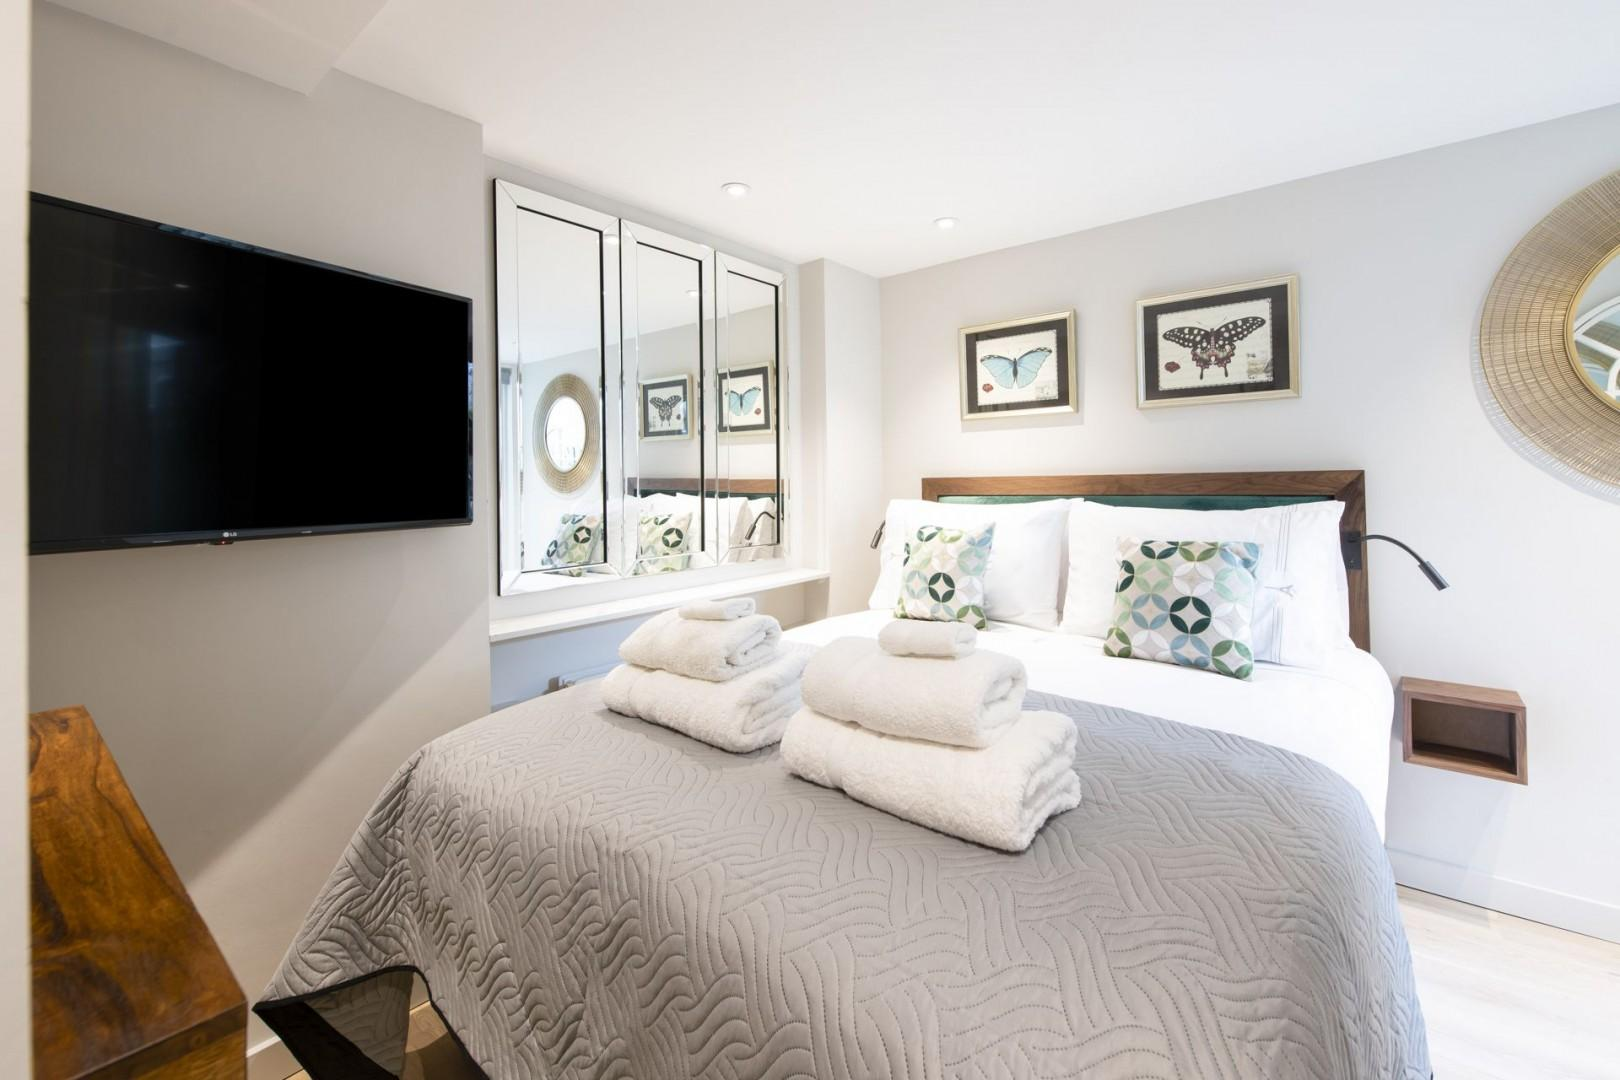 Get your sleep in this gorgeous bedroom